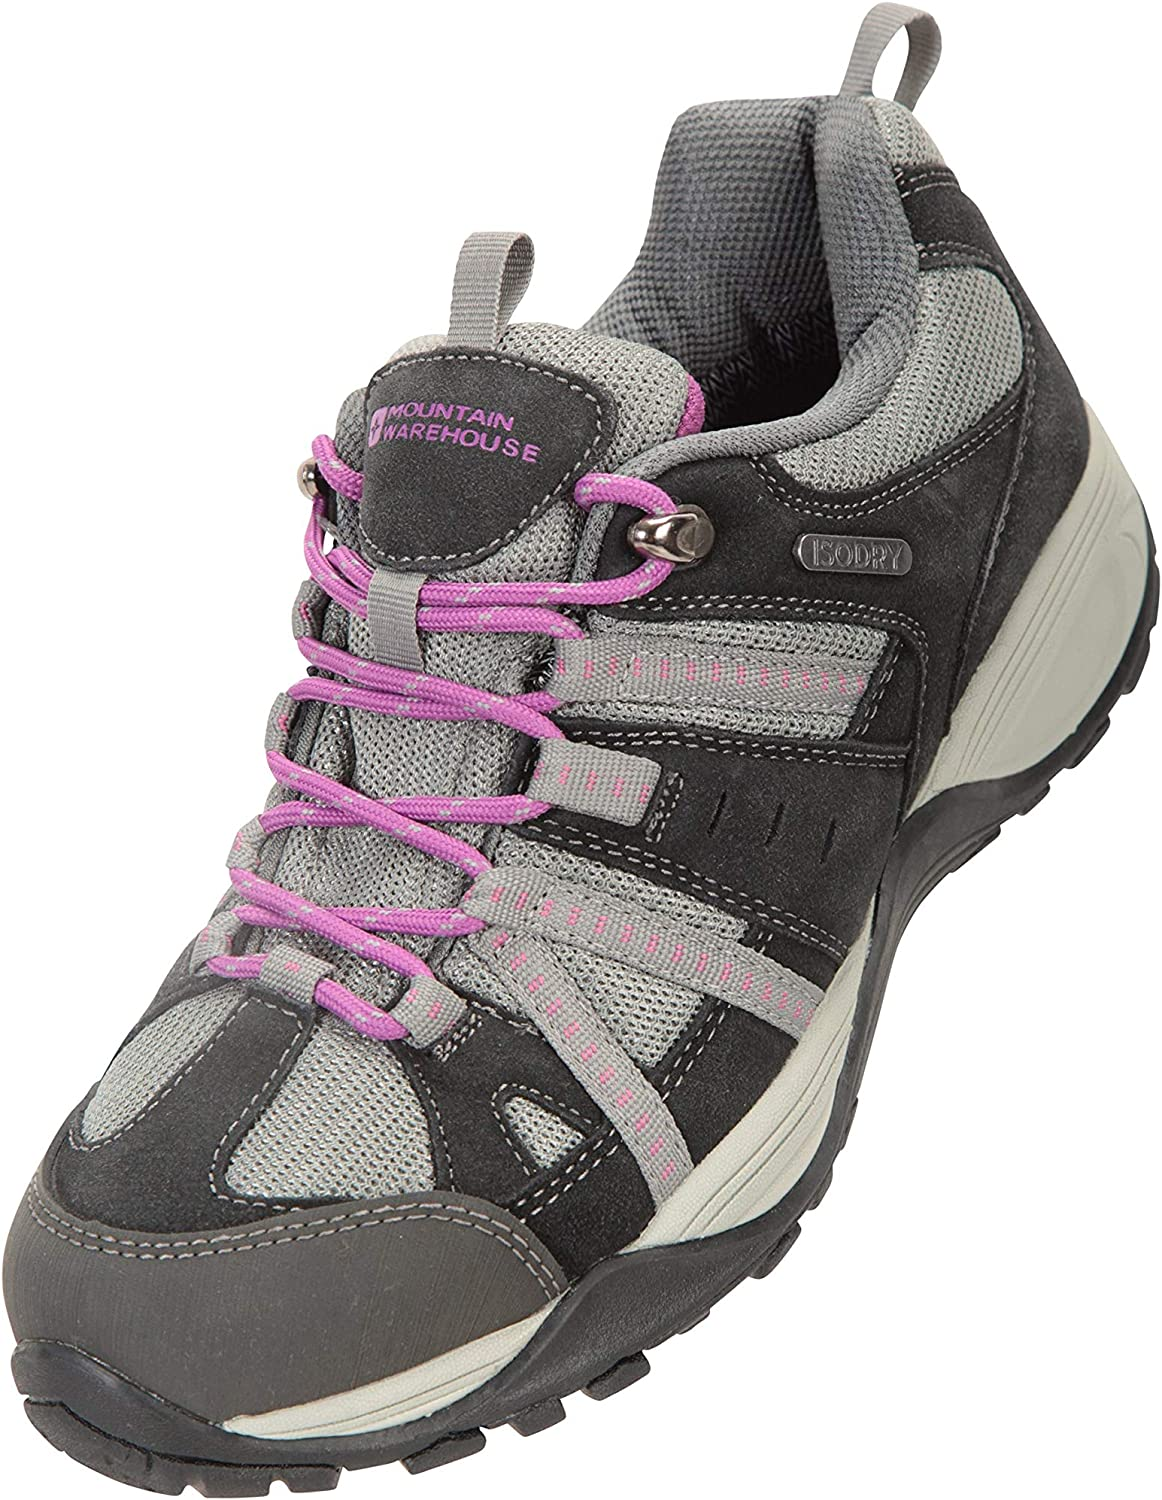 Mountain Warehouse Direction II Womens Waterproof Shoes - Synthetic Mesh Upper Ladies Footwear, EVA Cushioning, High Traction Rubber Outsole - Best for Hiking, Camping Gray